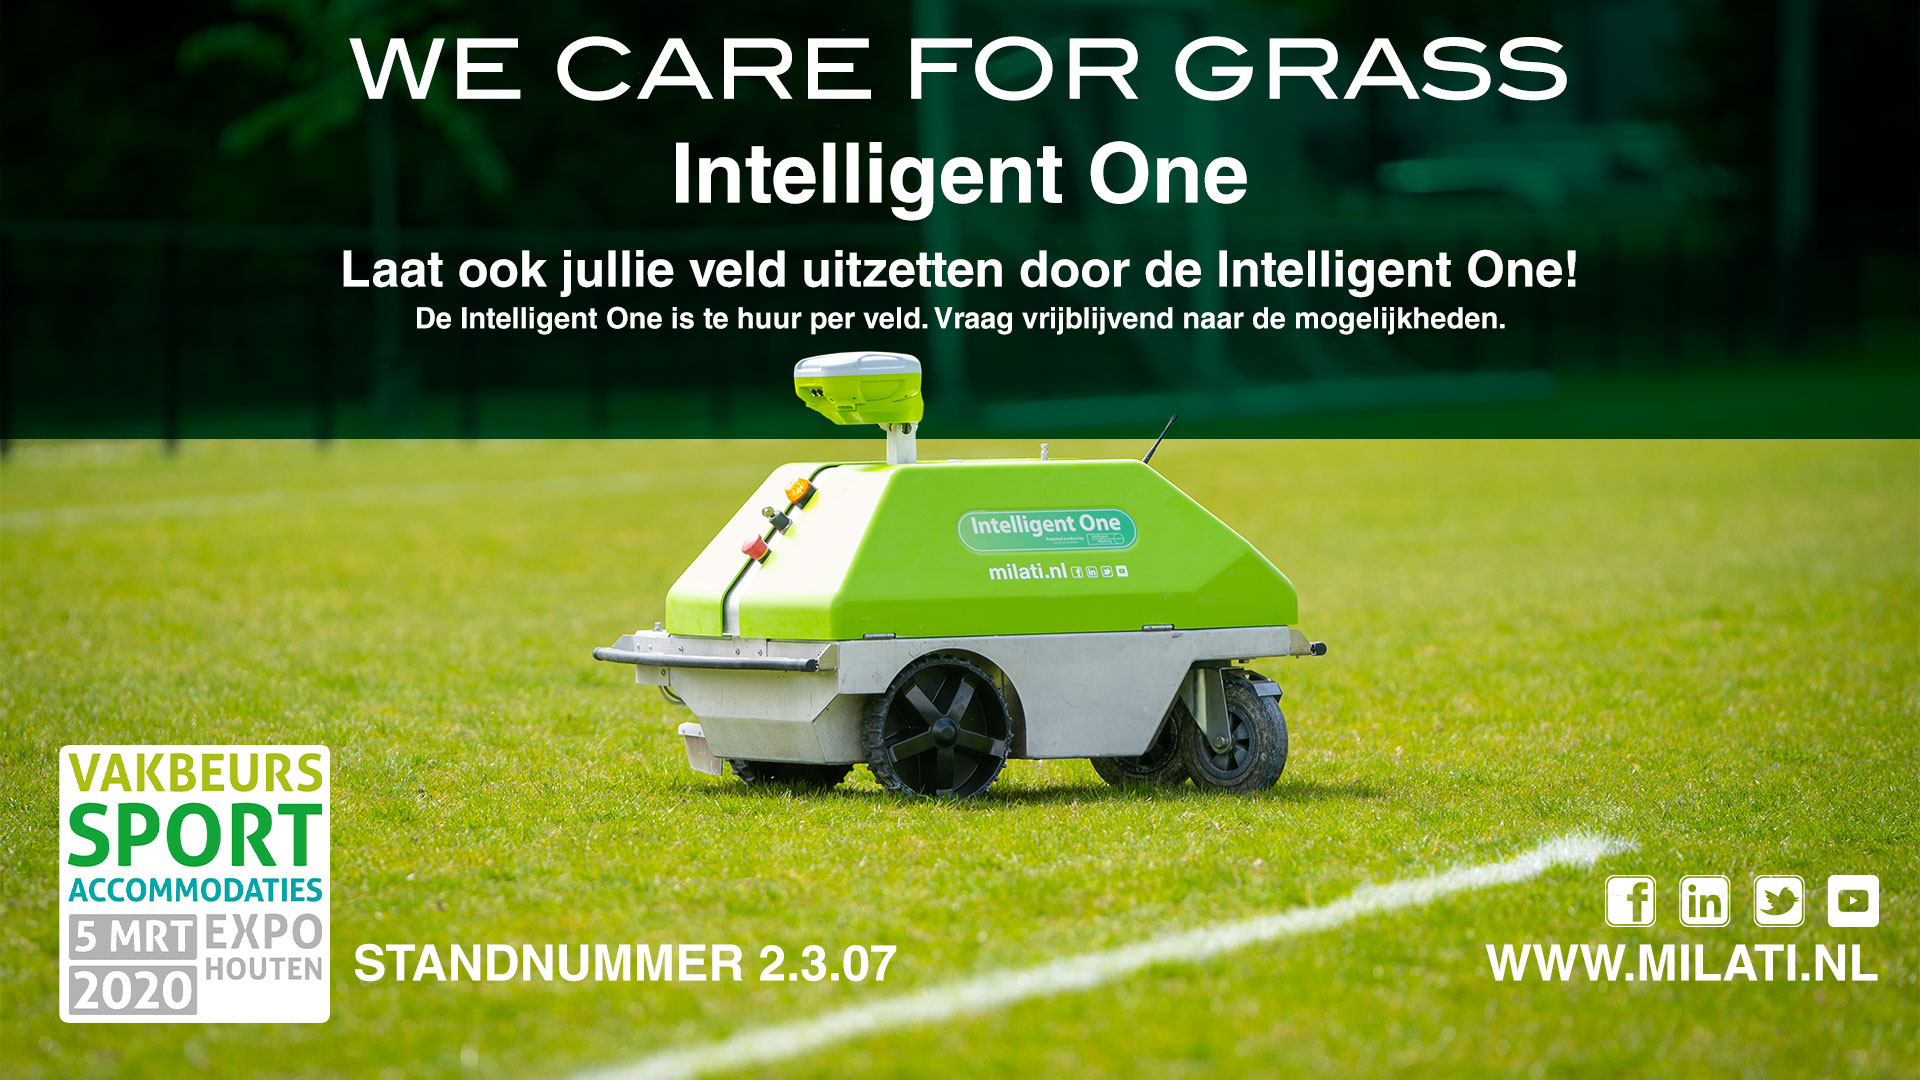 Milati Grass Machines Vakbeurs Sportaccommodaties